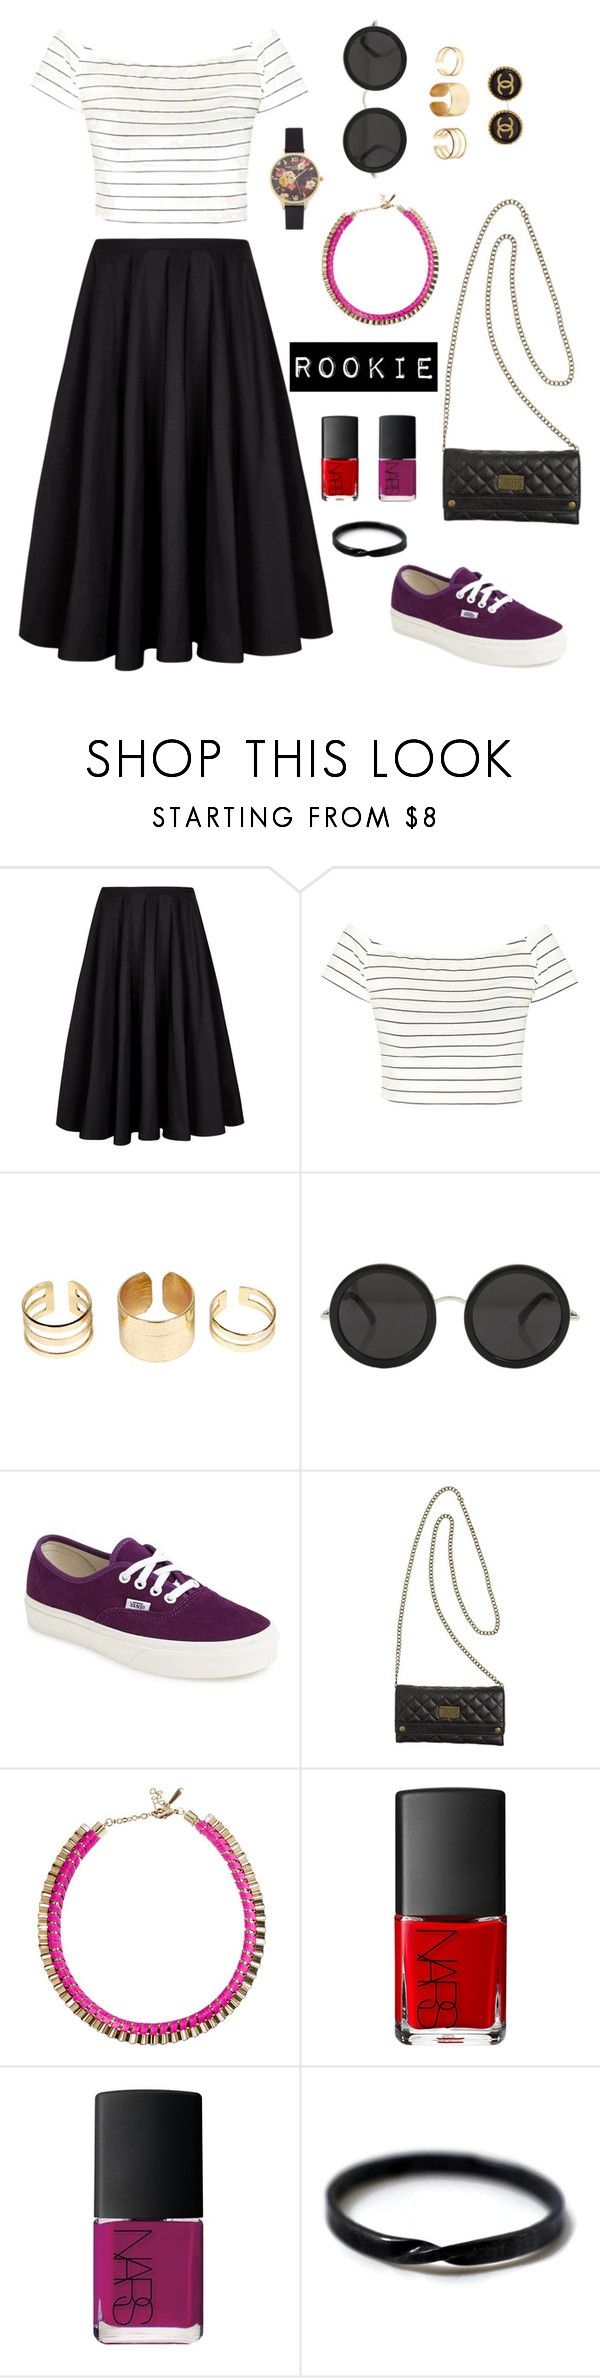 """oh rookie"" by lulusyanastia ❤ liked on Polyvore featuring Ted Baker, Boohoo, The Row, Vans, John & Pearl, NARS Cosmetics and Olivia Burton"